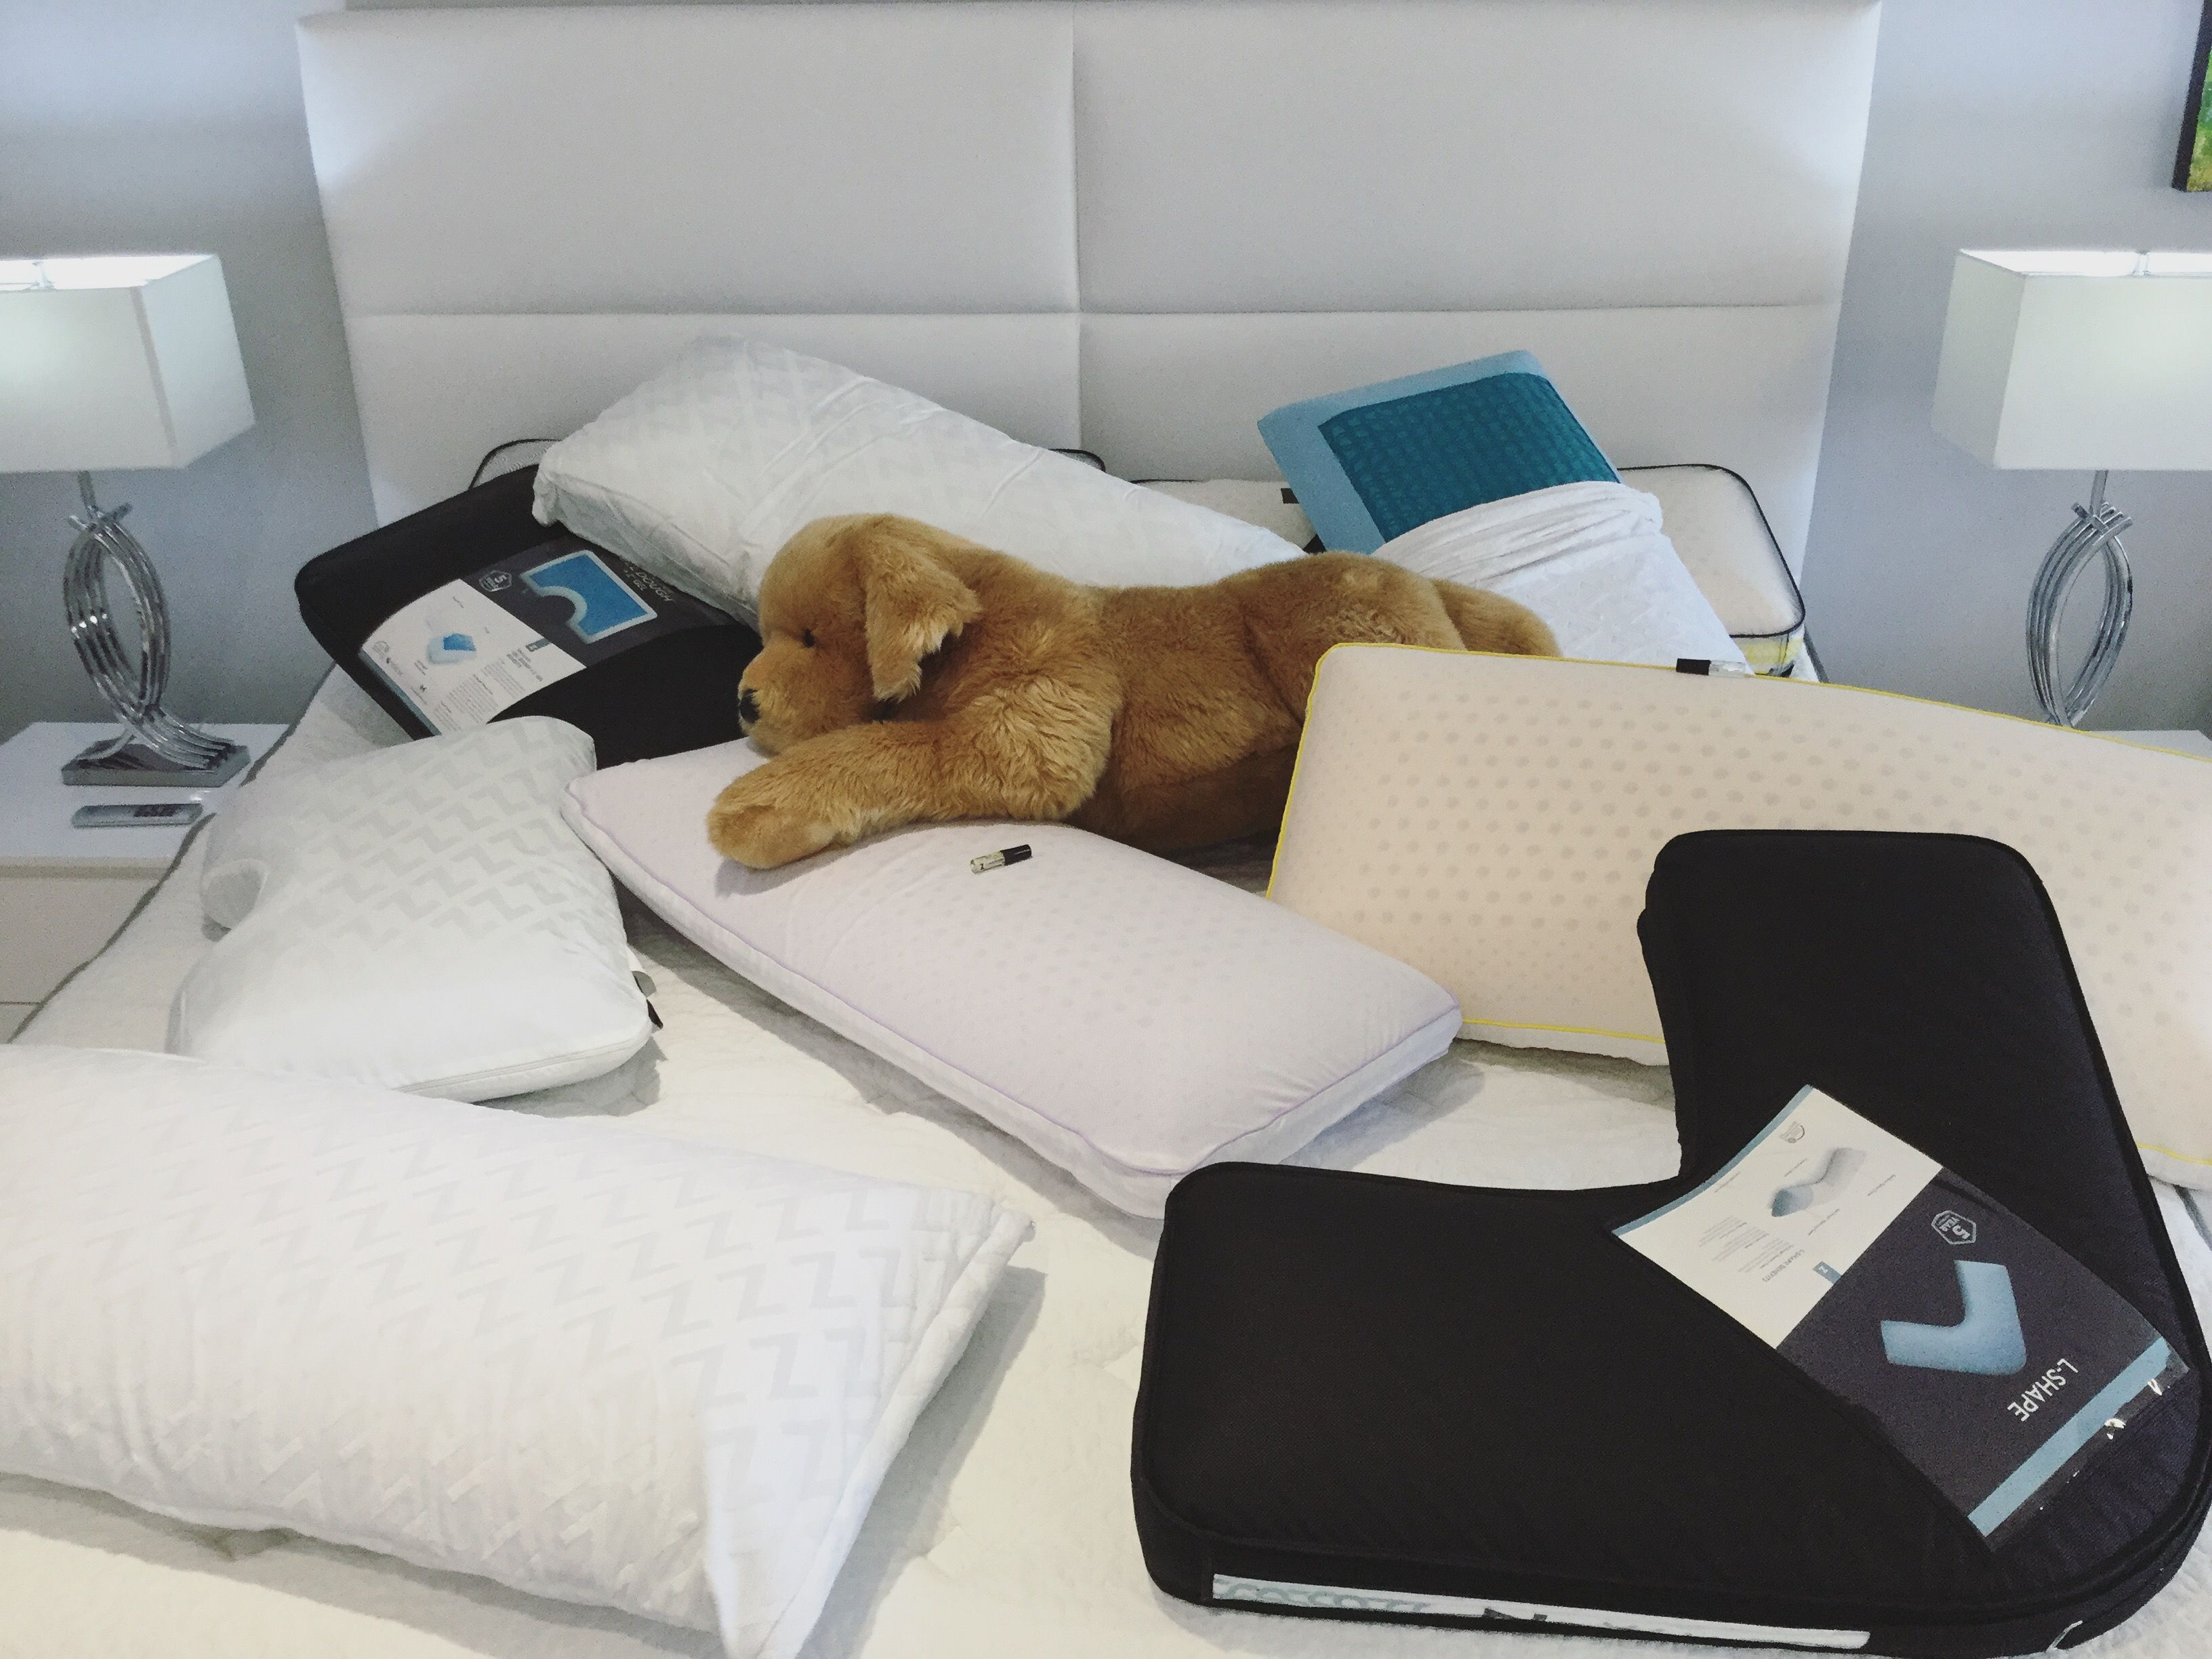 Stop By SoBe Furniture This Week, And Buy Bed Pillows That Have Cool Gel +